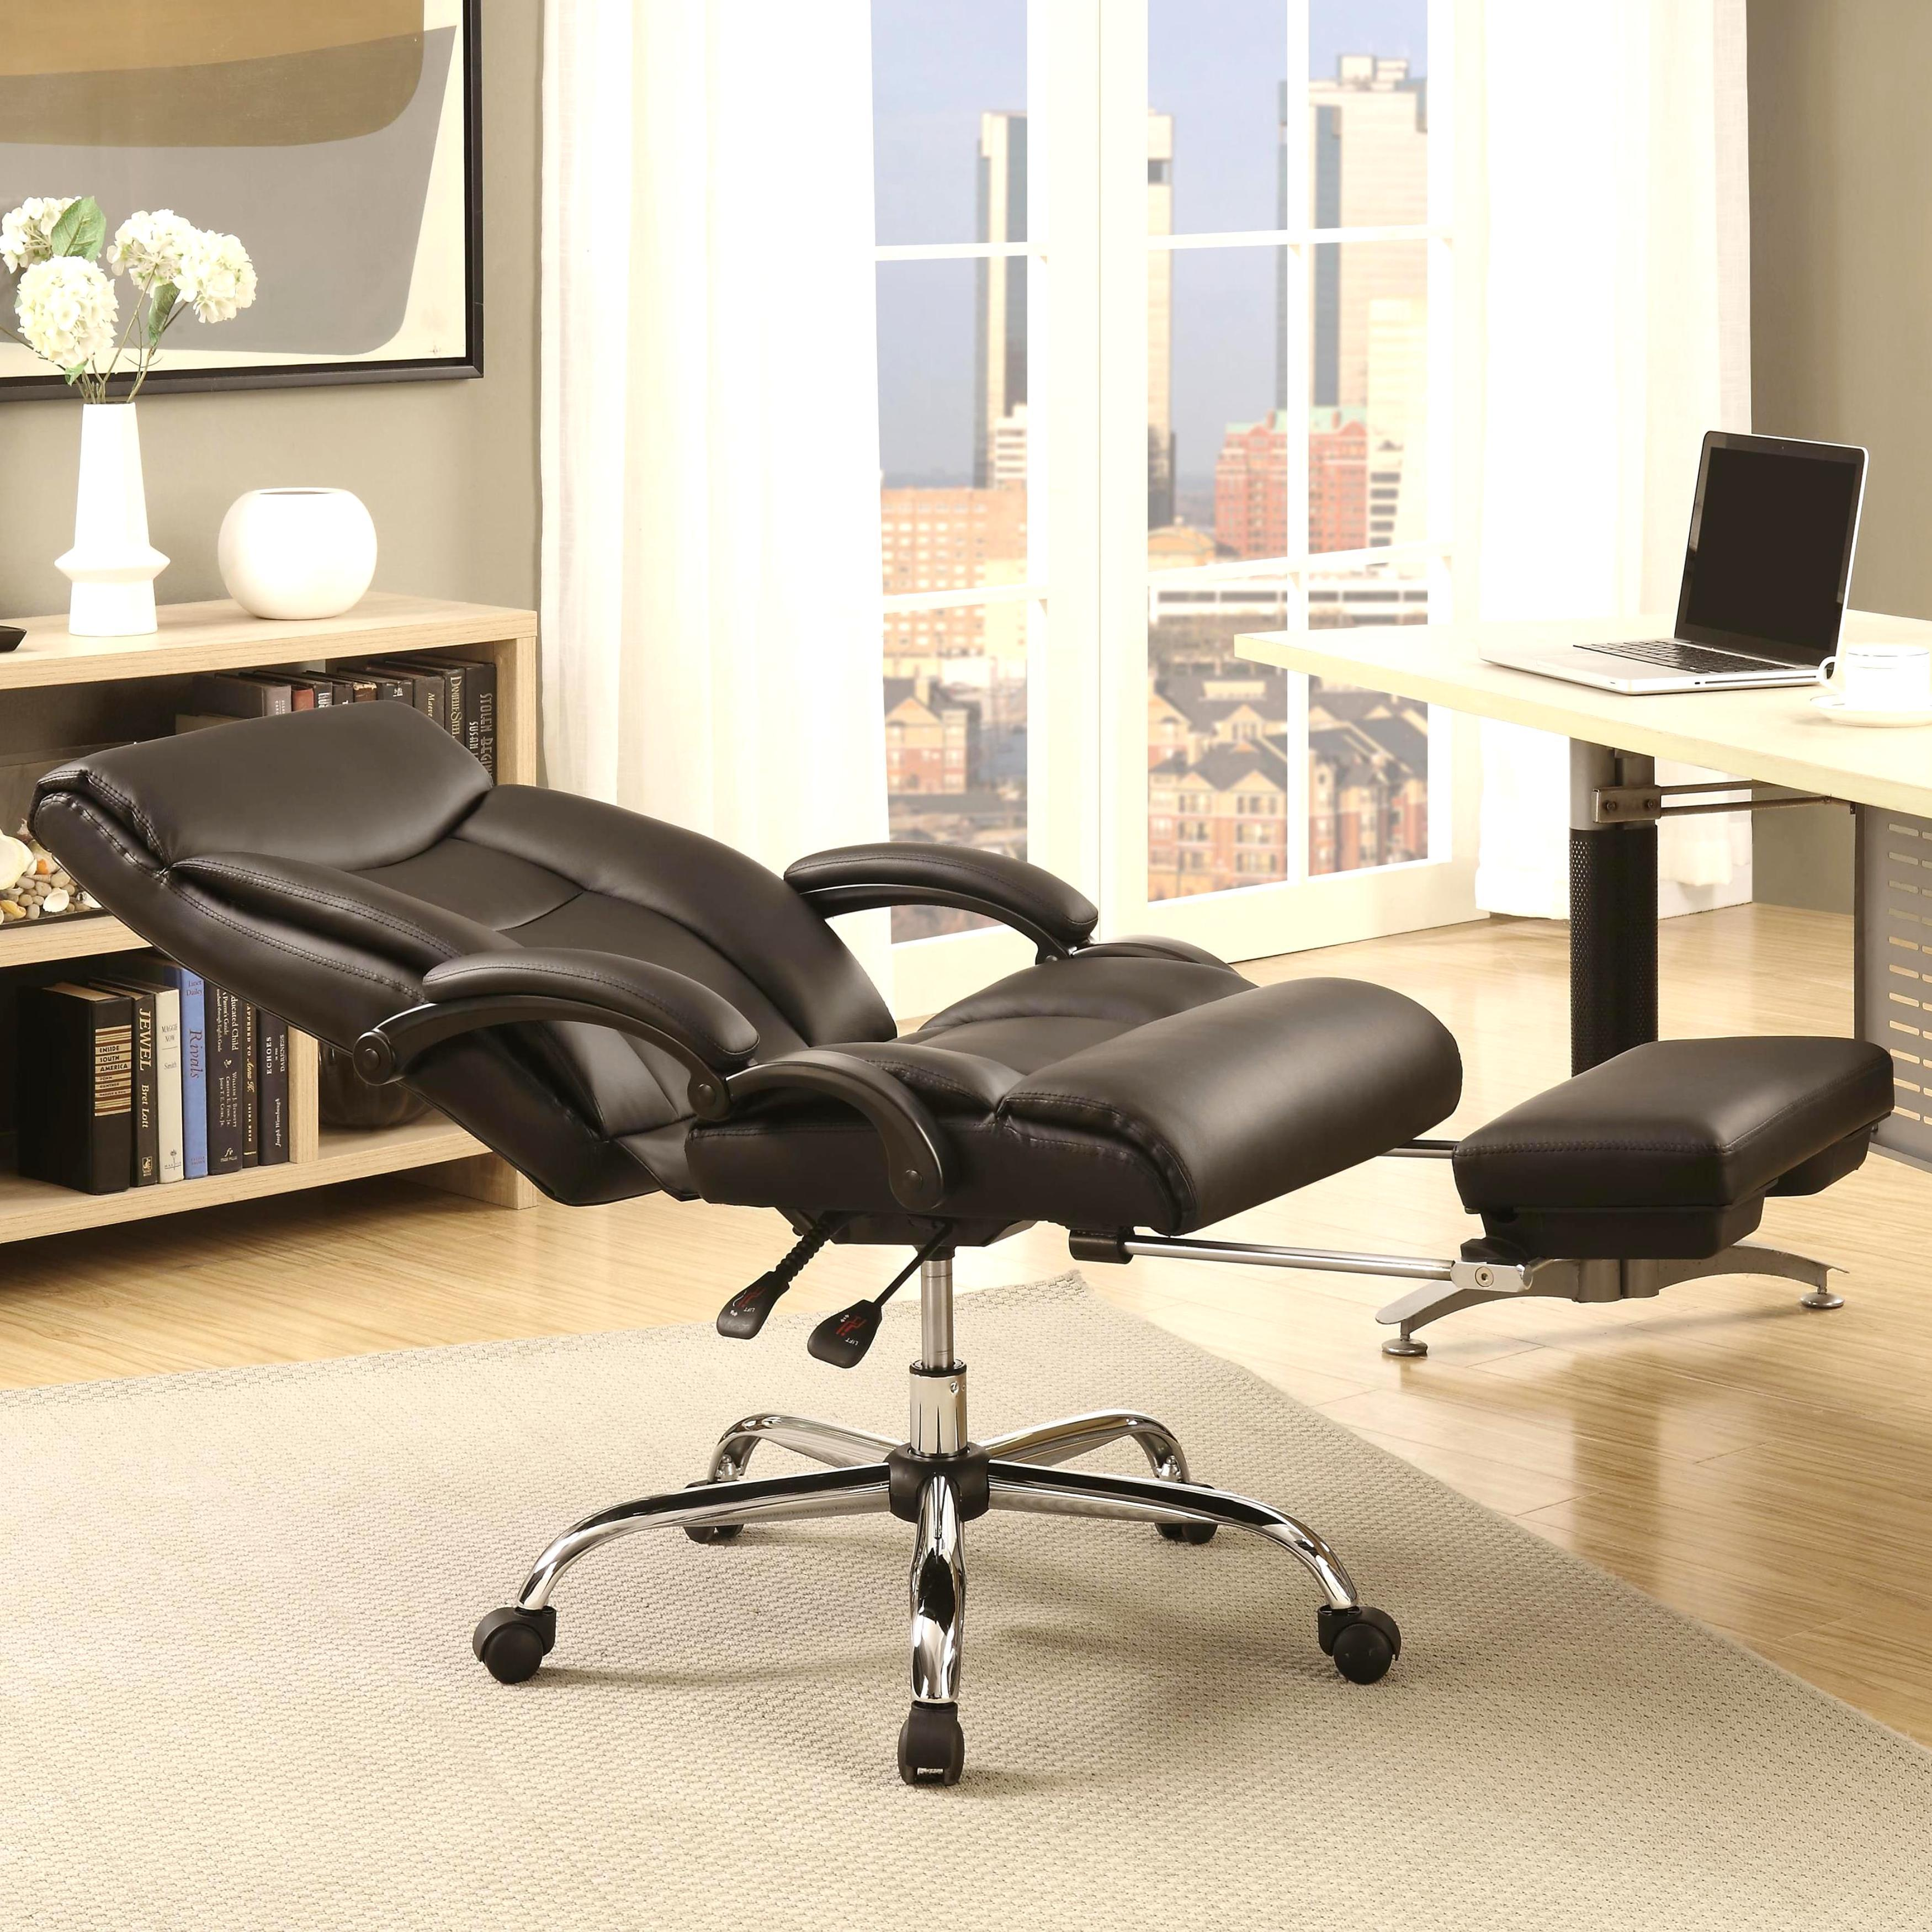 Executive Adjustable Reclining Office Chair with Incremental